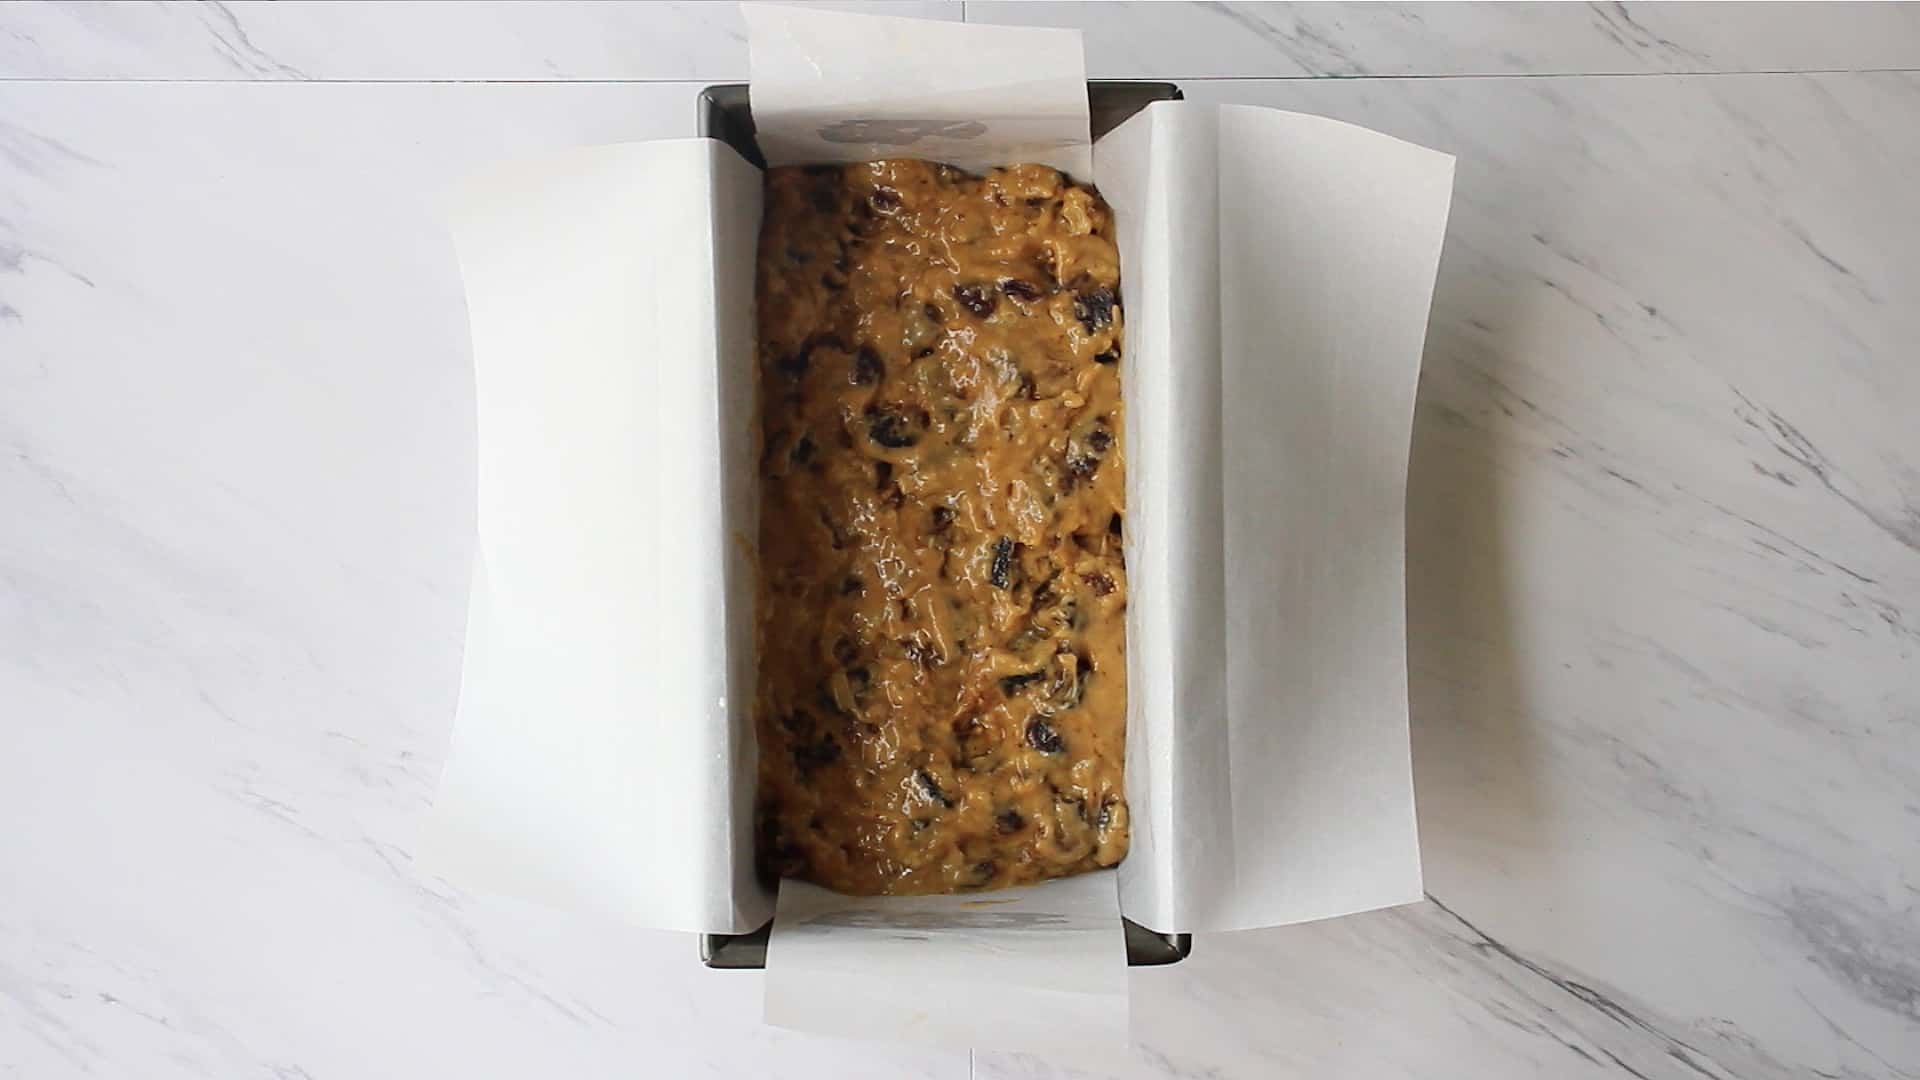 Dried fruit batter in a loaf pan